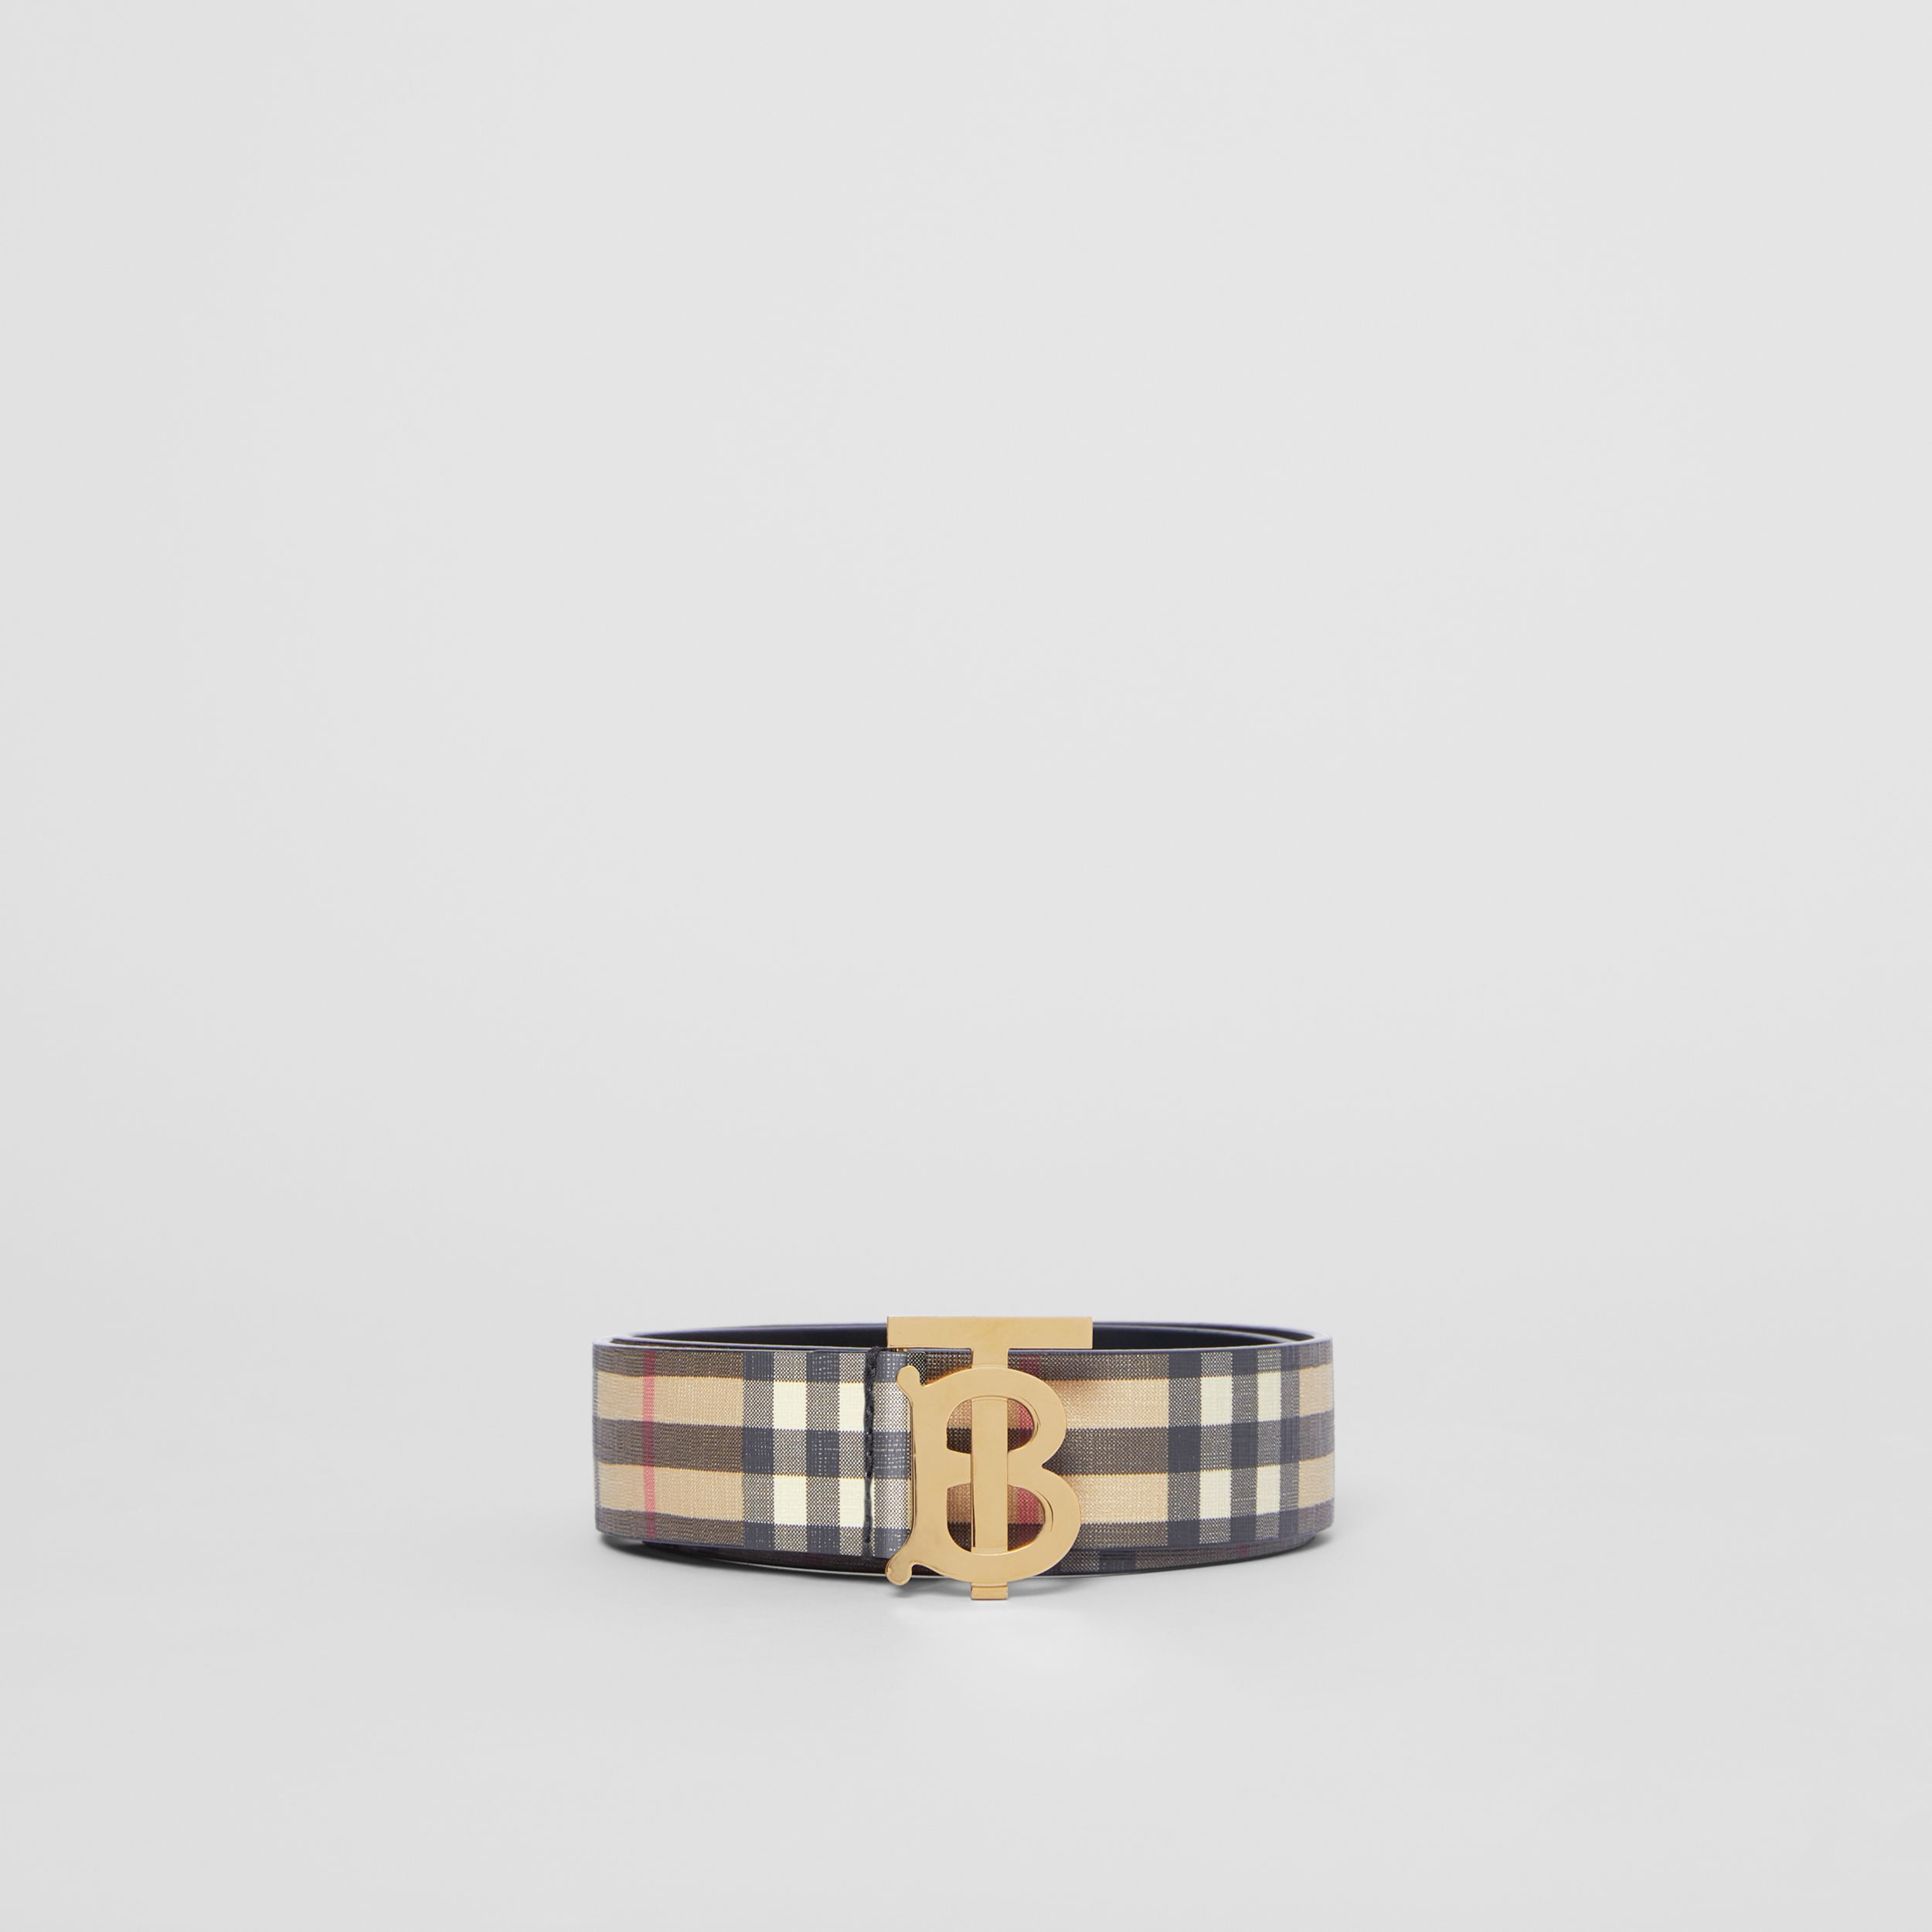 Monogram Motif Vintage Check E-canvas Belt in Archive Beige - Women | Burberry Hong Kong S.A.R. - 4